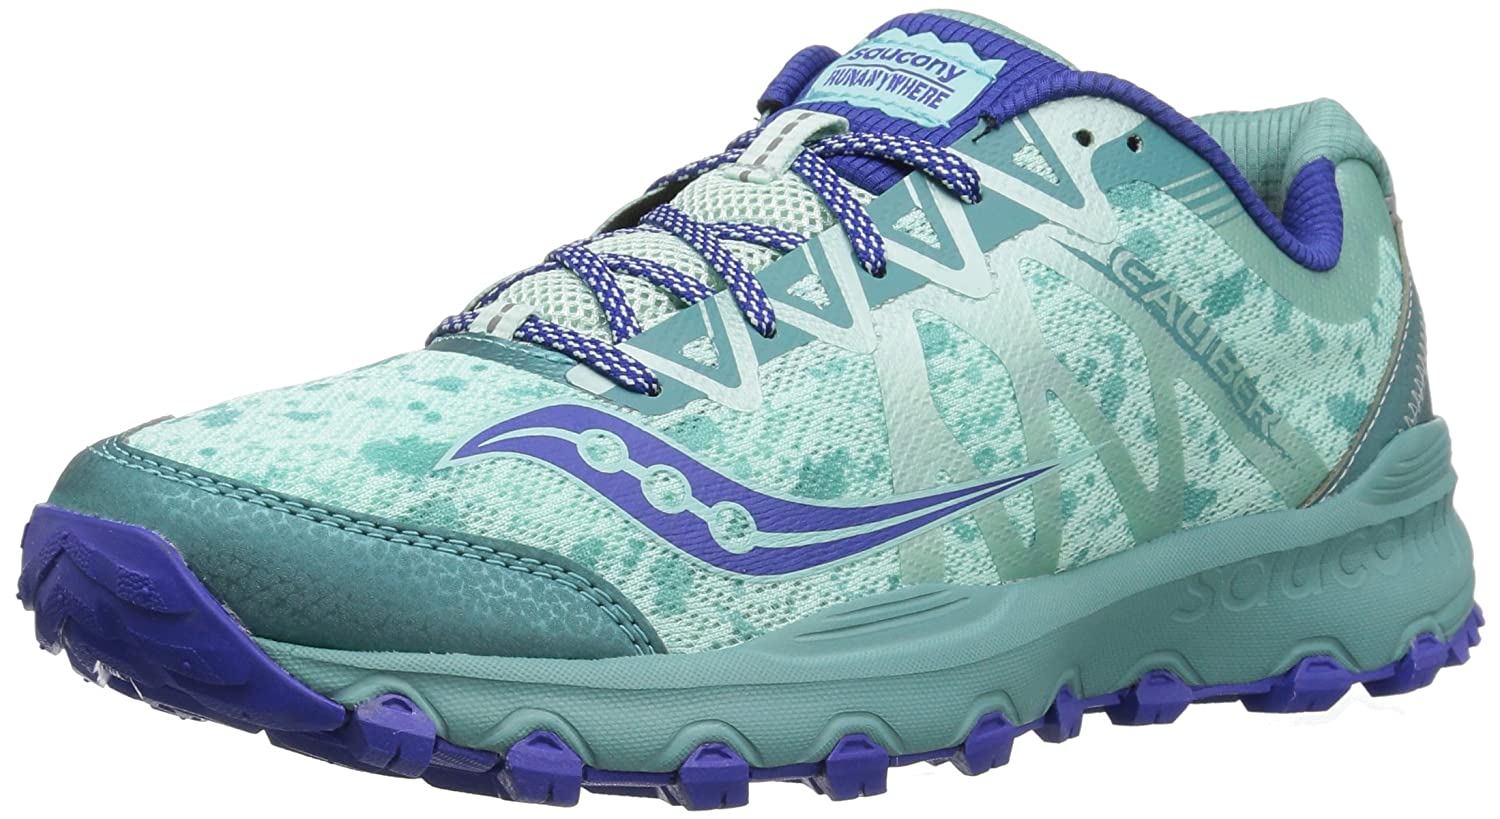 Saucony Women's Grid Caliber TR Trail Runner Shoe B01HXGU2DI 6.5 B(M) US|Mint/Blue